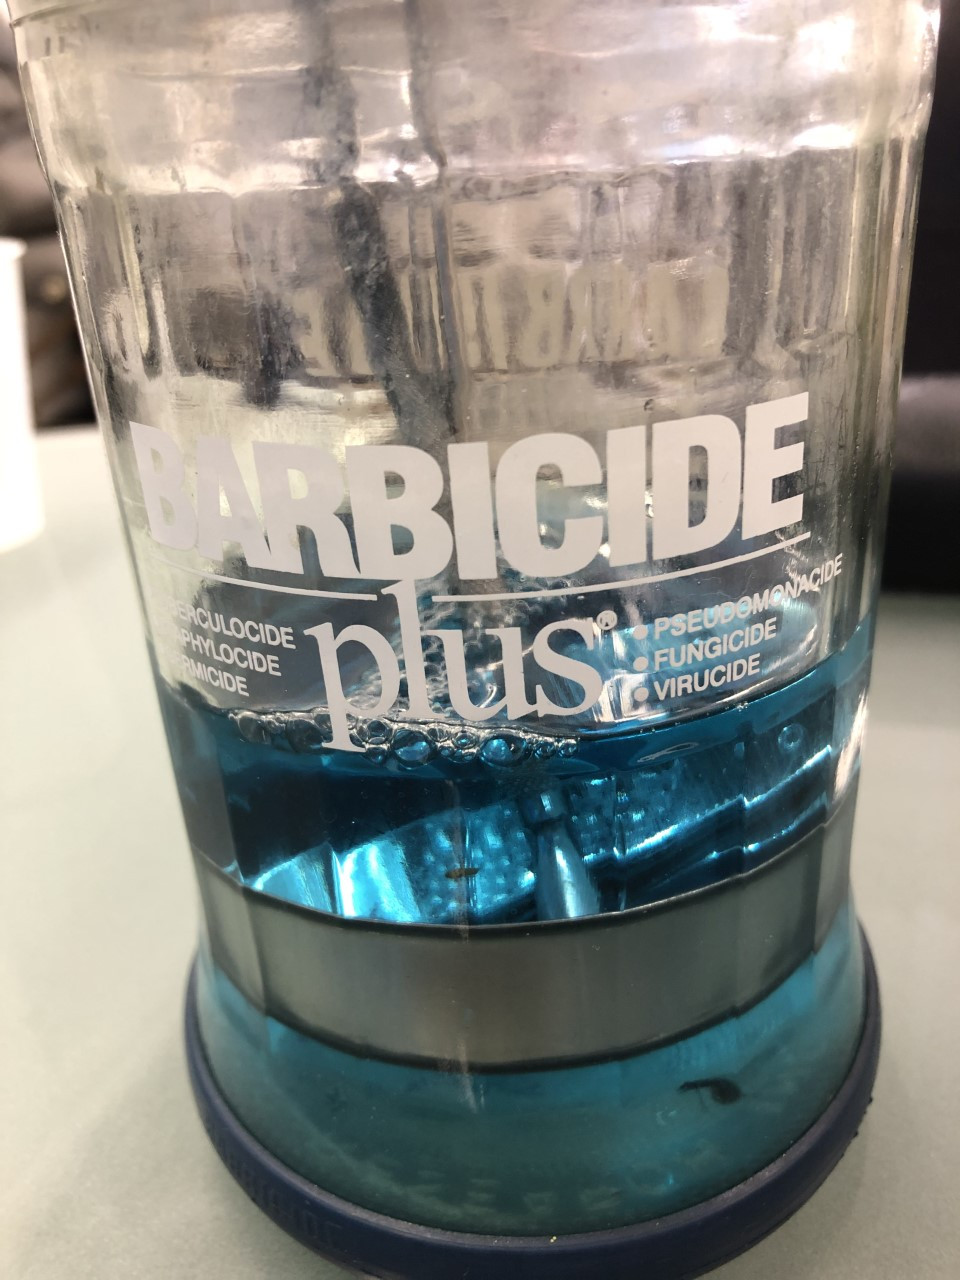 Disinfectant I found in a salon with floating debris and a fly!